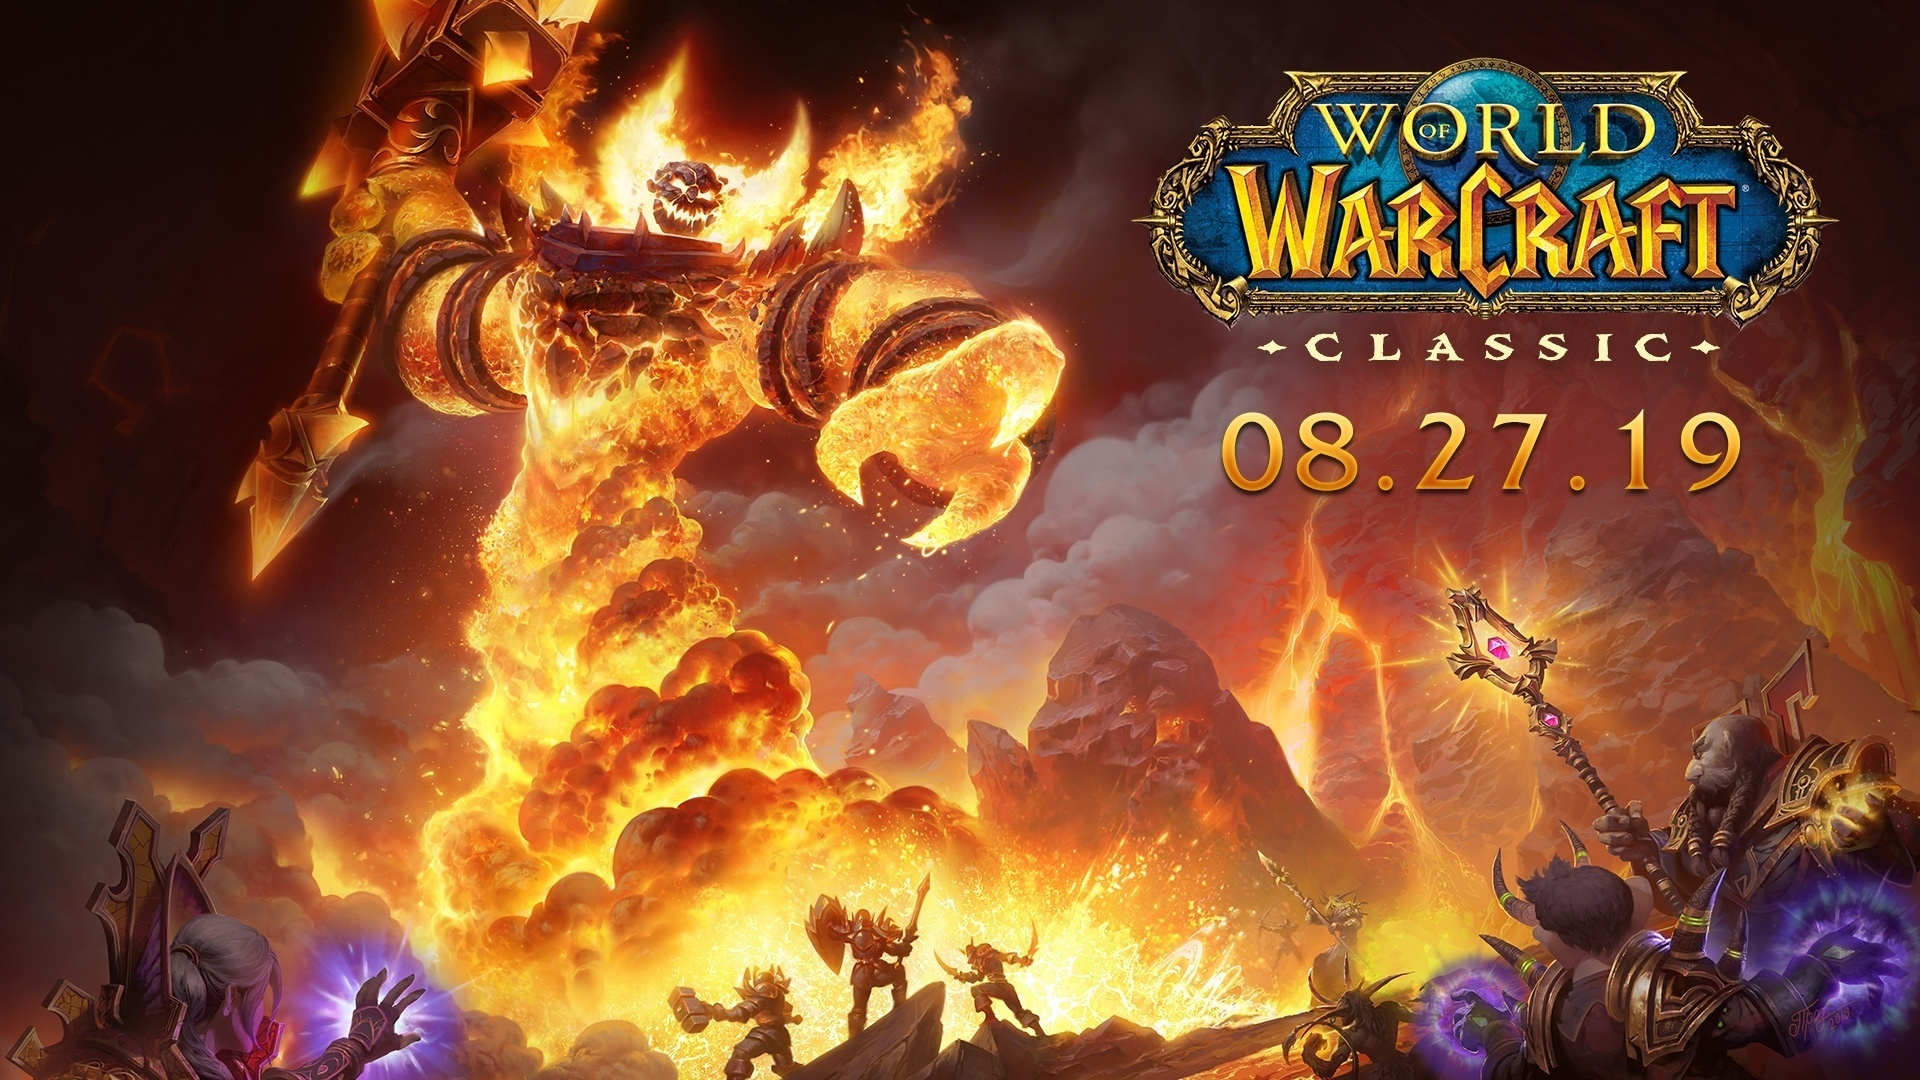 WoW Classic Stress Test on May 22nd - Wowhead News